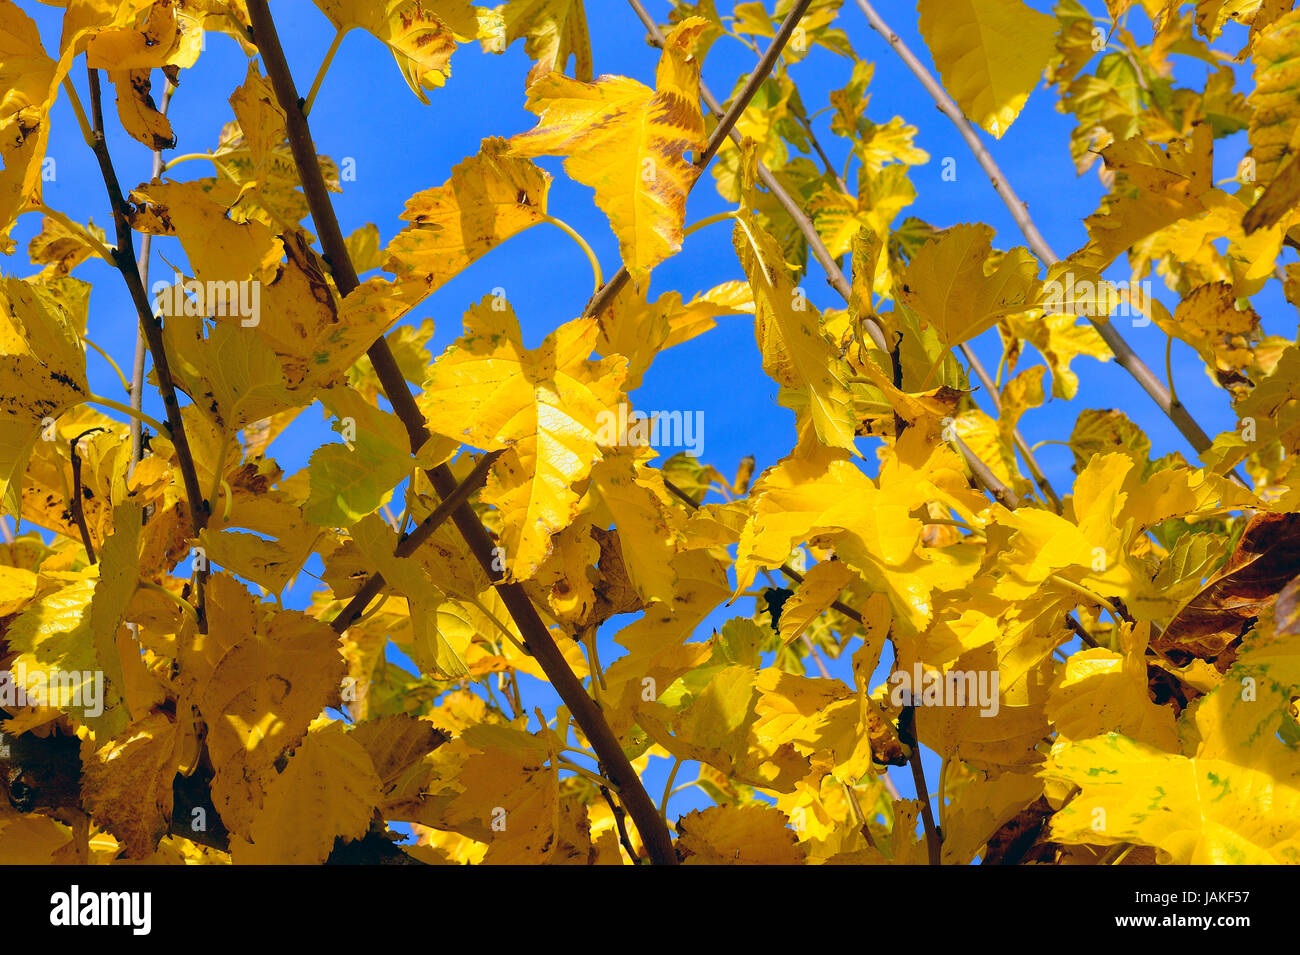 a sharp very yellow tree in autumn on a bottom of blue sky. - Stock Image